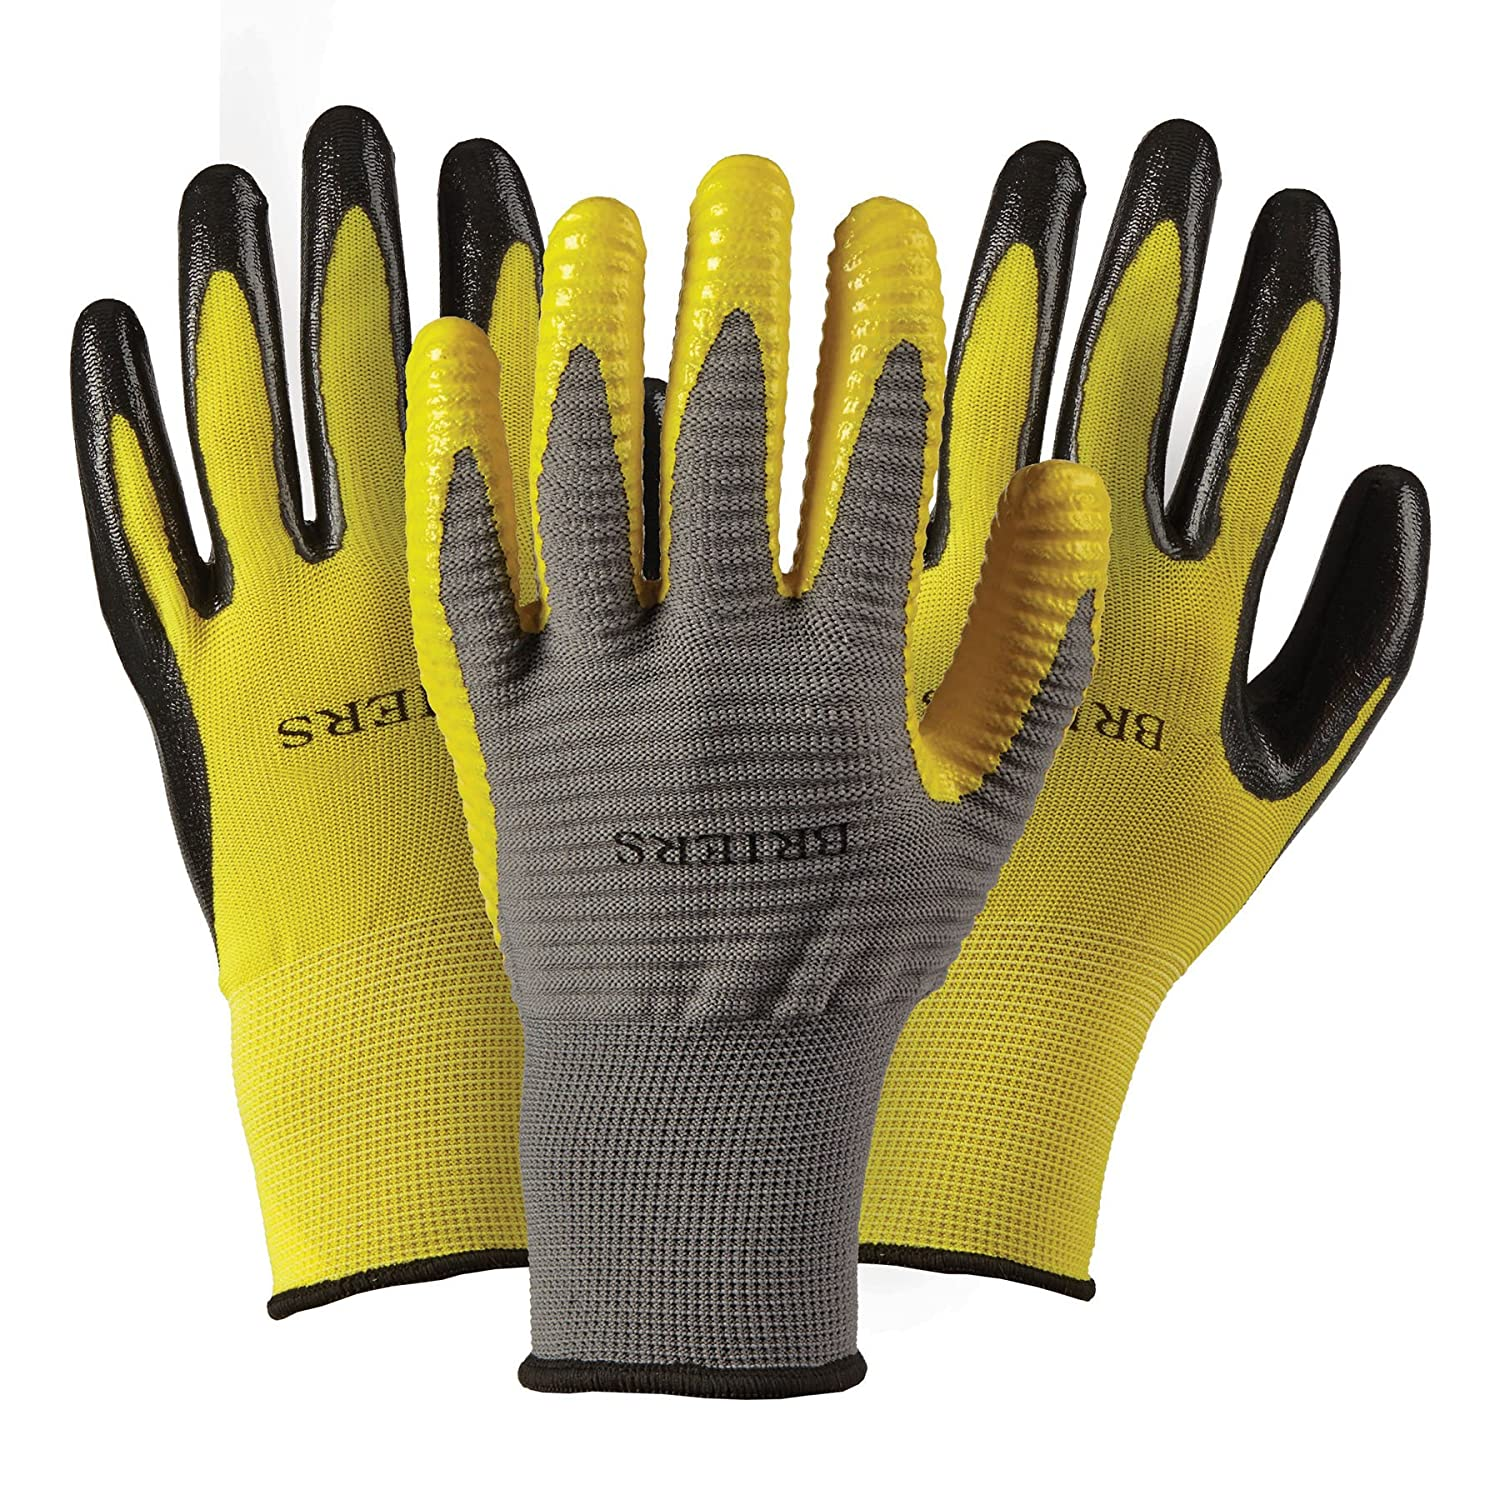 Briers Mens Triple Ribbed Gloves, Grey/Yellow/Black, Large Briers Ltd B6180